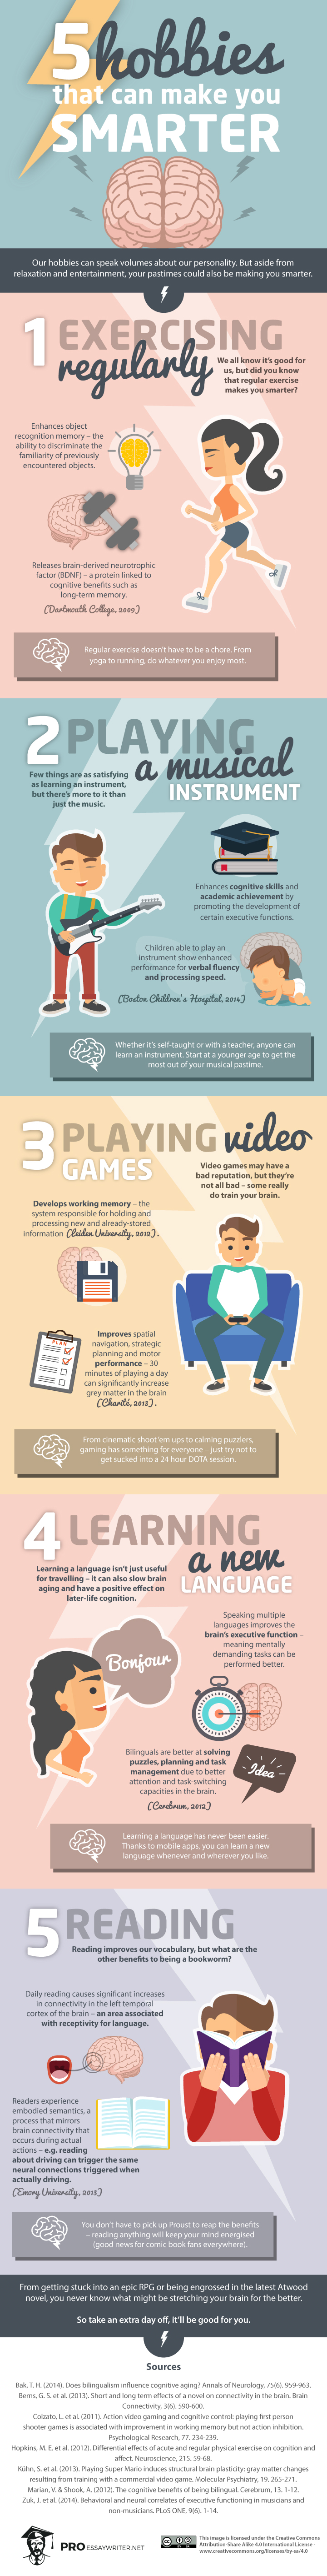 5-hobbies-that-can-make-you-smarter